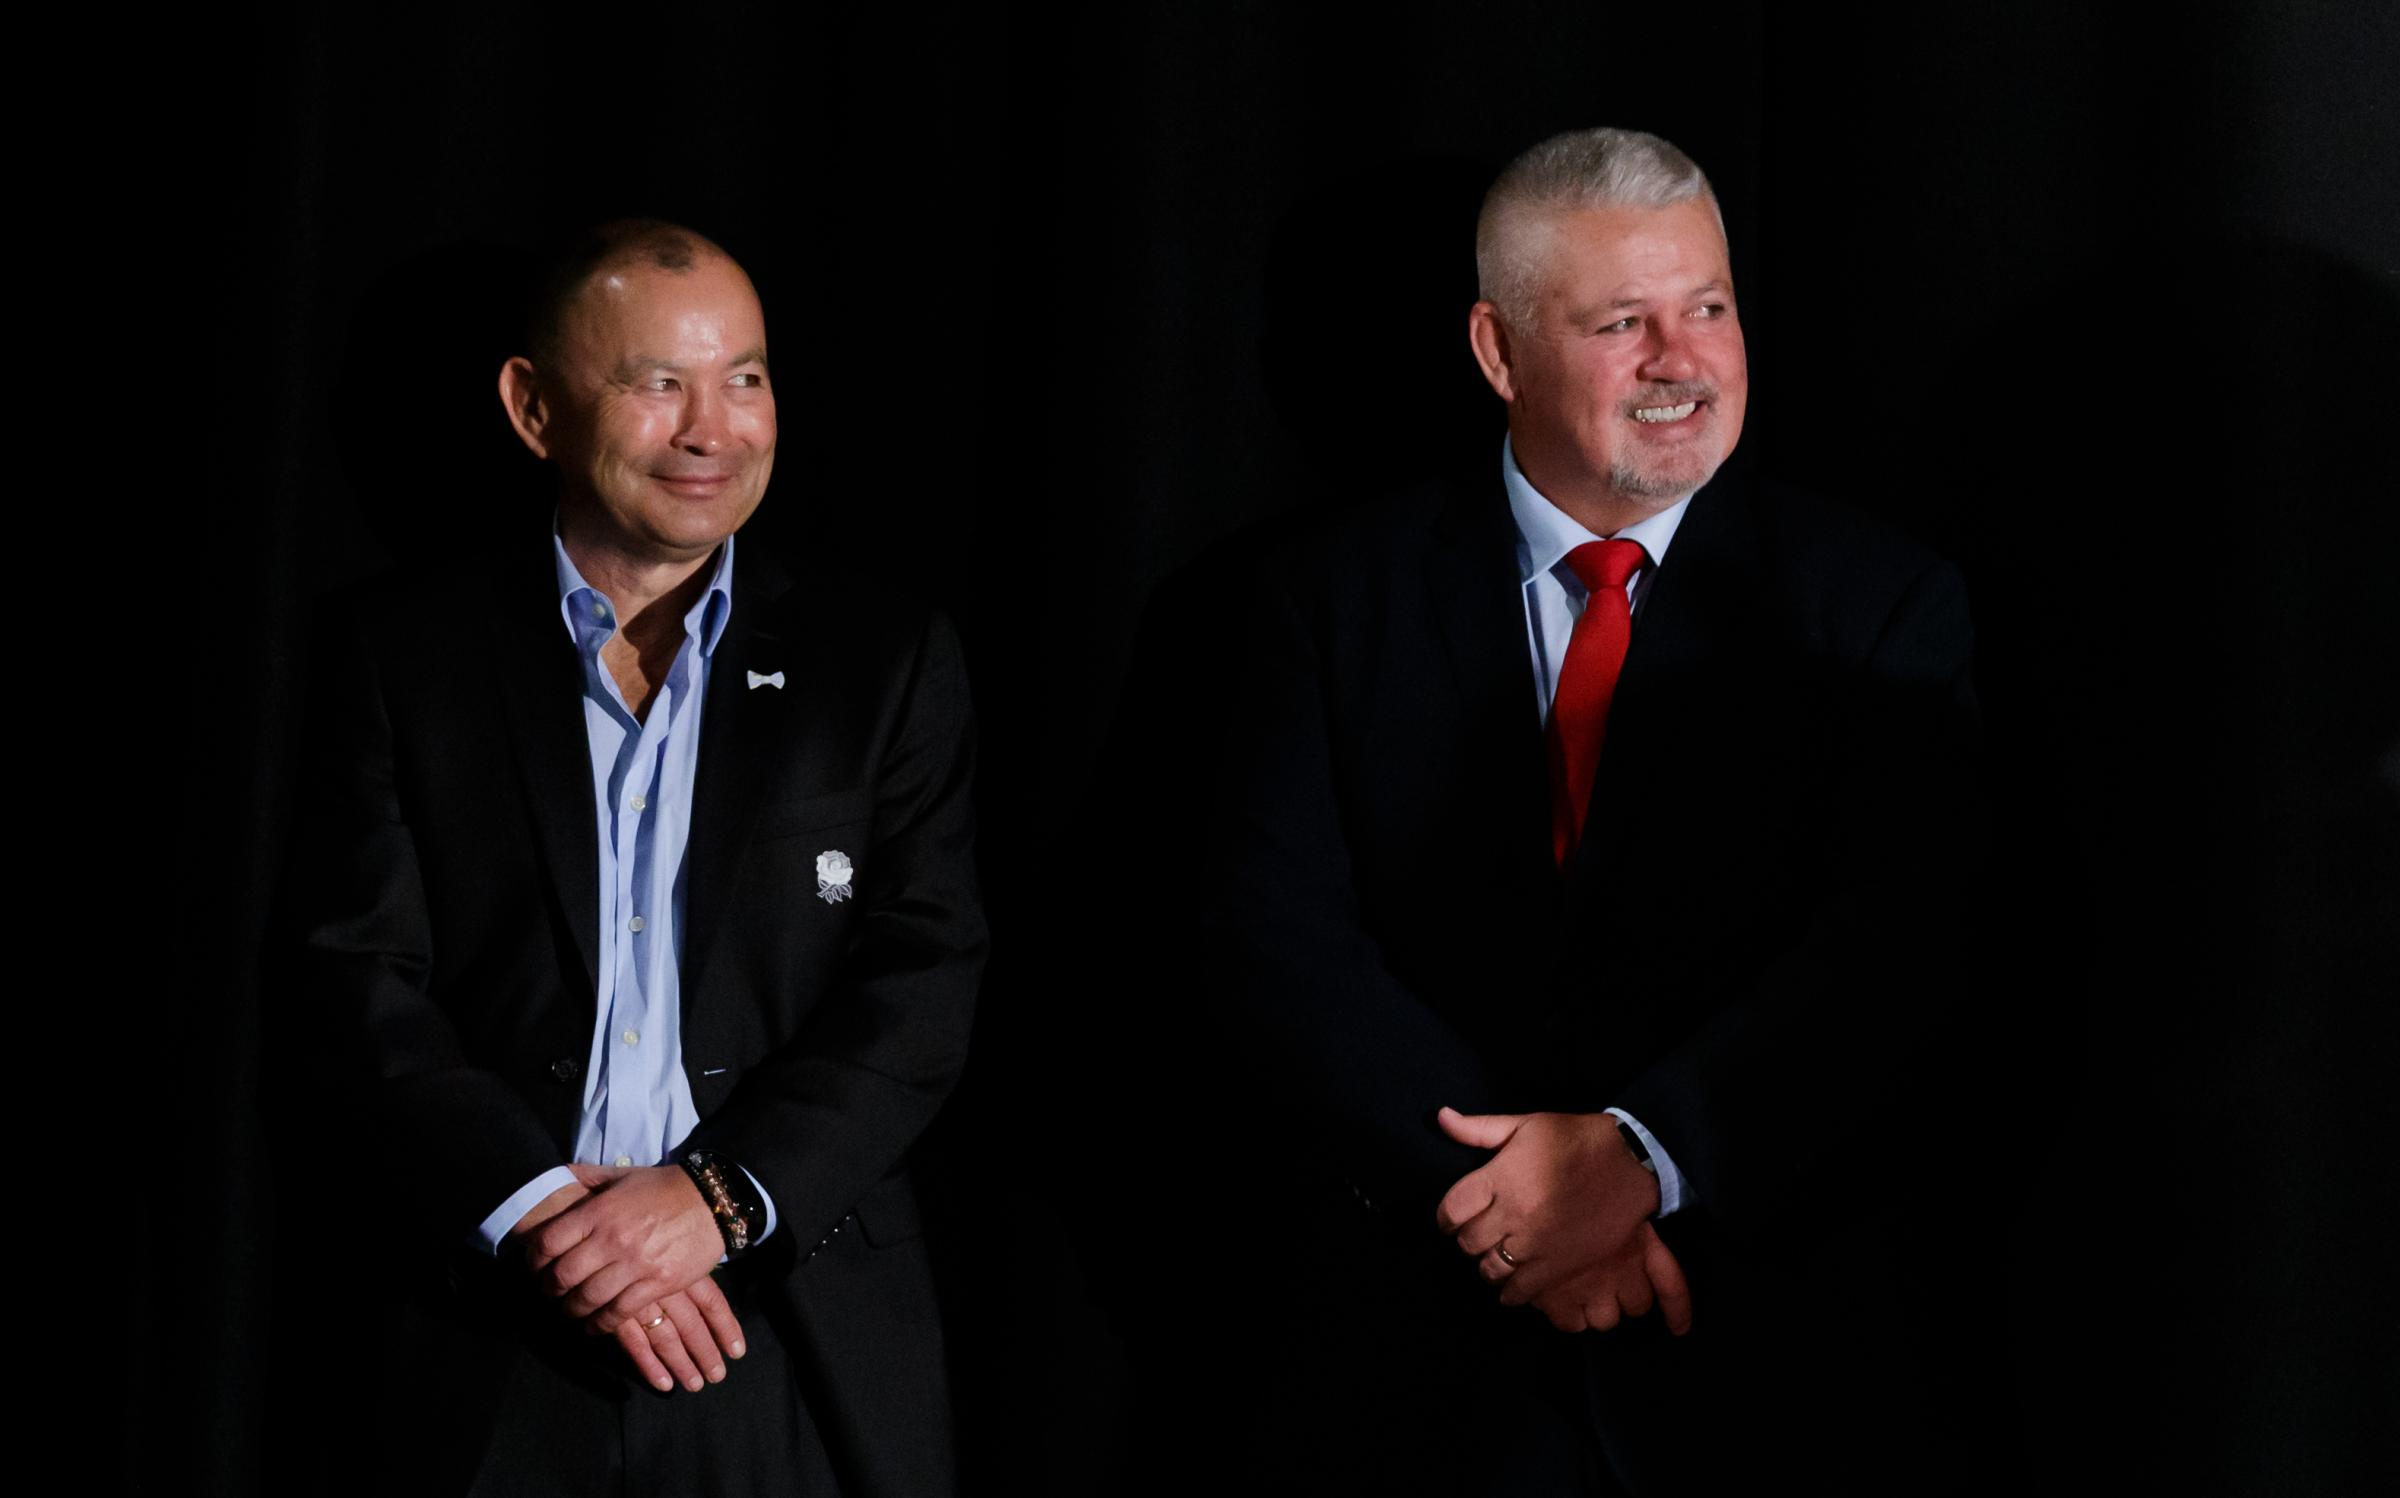 England coach Eddie Jones (left) and Wales coach Warren Gatland during the Guinness Six Nations launch at The Hurlingham Club, London. PRESS ASSOCIATION Photo. Picture date: Wednesday January 23, 2019. See PA story RUGBYU Launch. Photo credit should read: